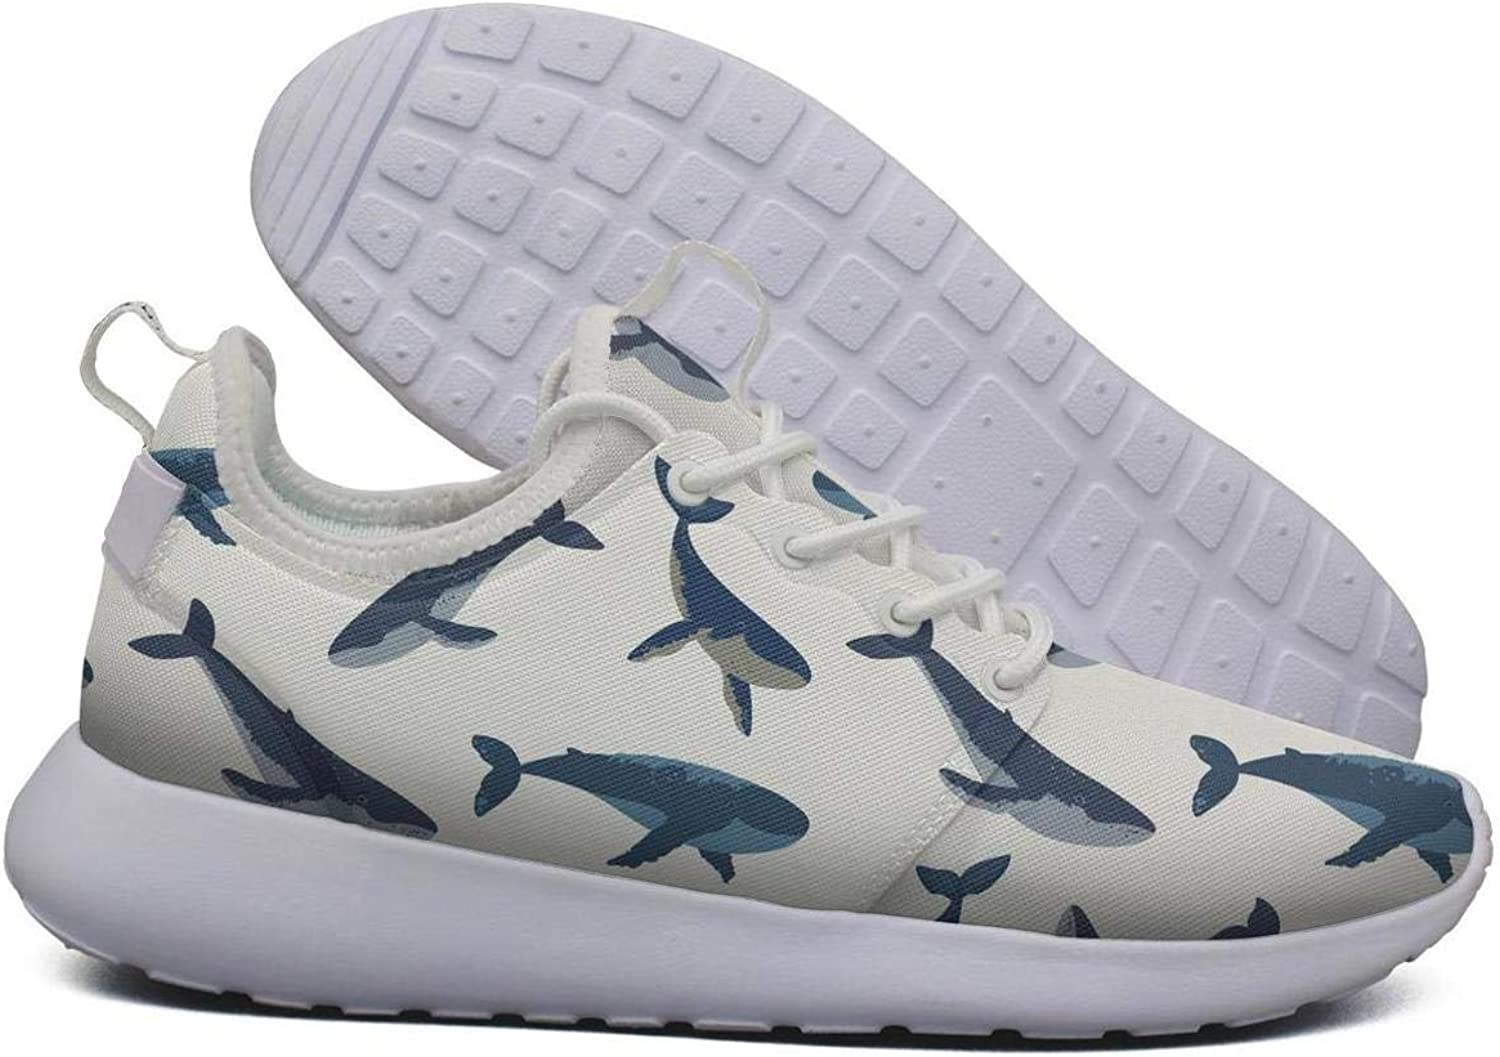 Hoohle Sports Womens Dancing Dolphin Whales Flex Mesh Roshe 2 Lightweight Casual Walking Jogging shoes